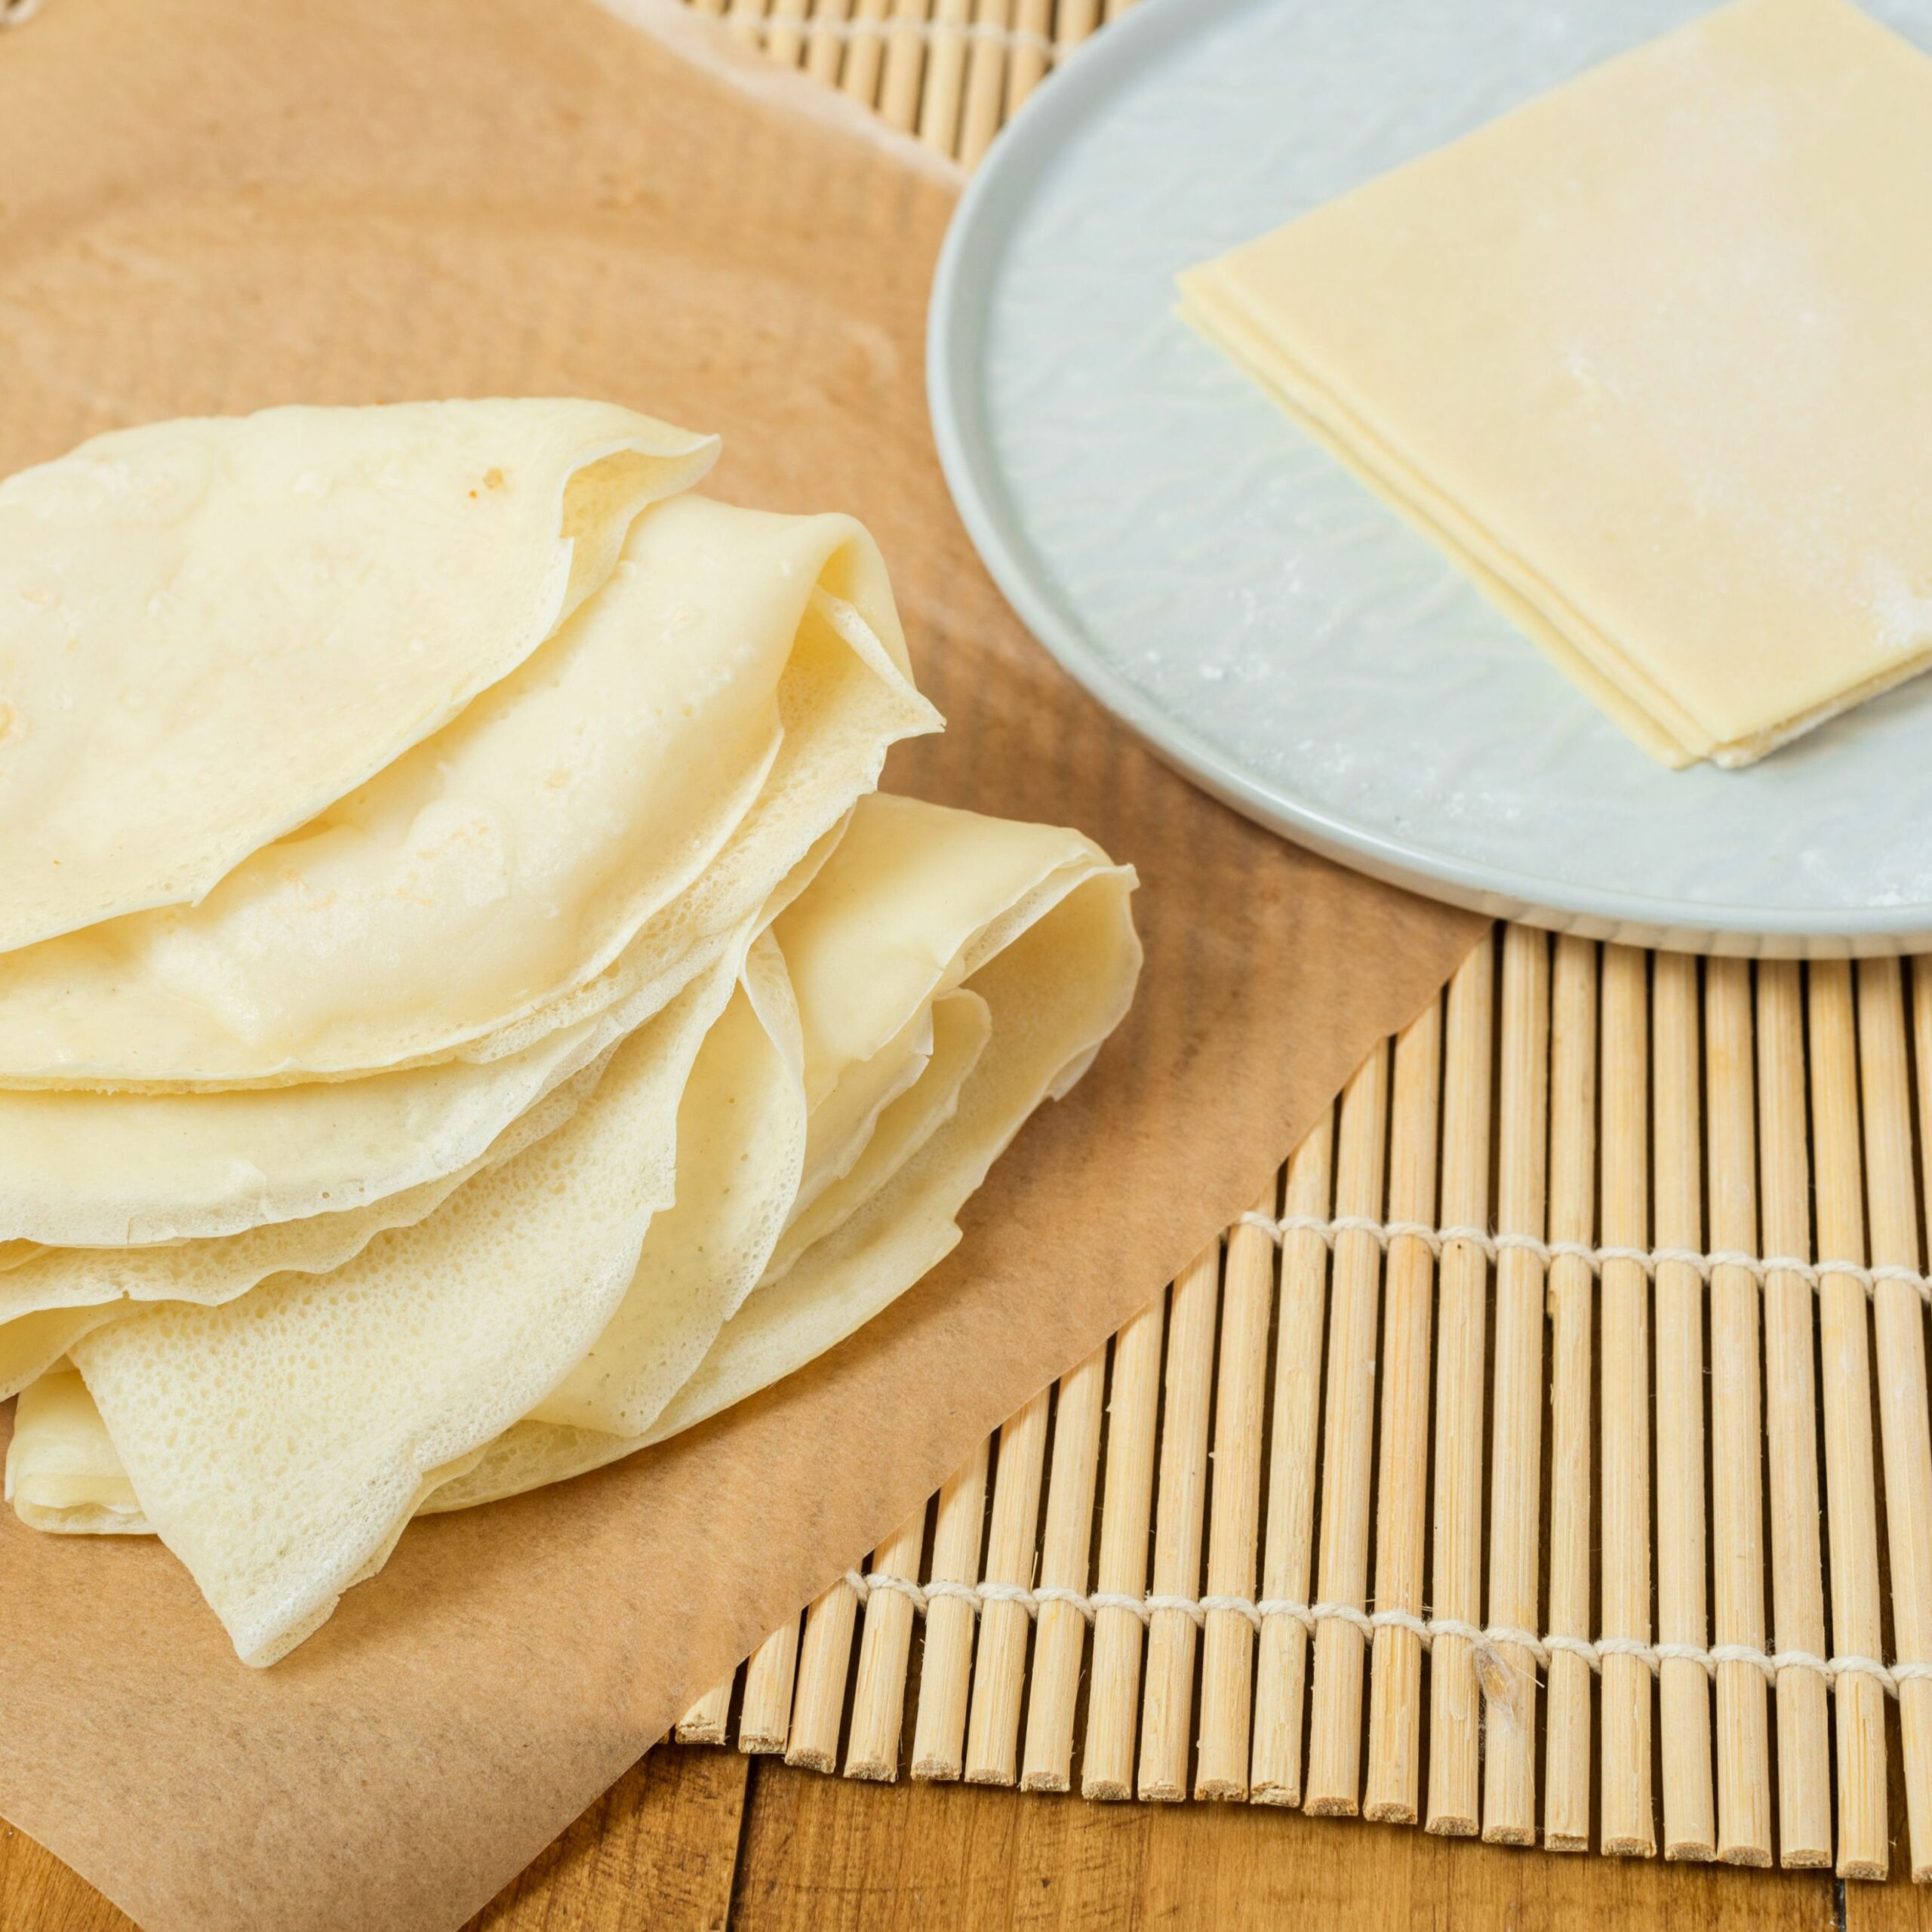 Chinese Egg Roll Wrapper Recipe - Recipes Using Egg Roll Wrappers